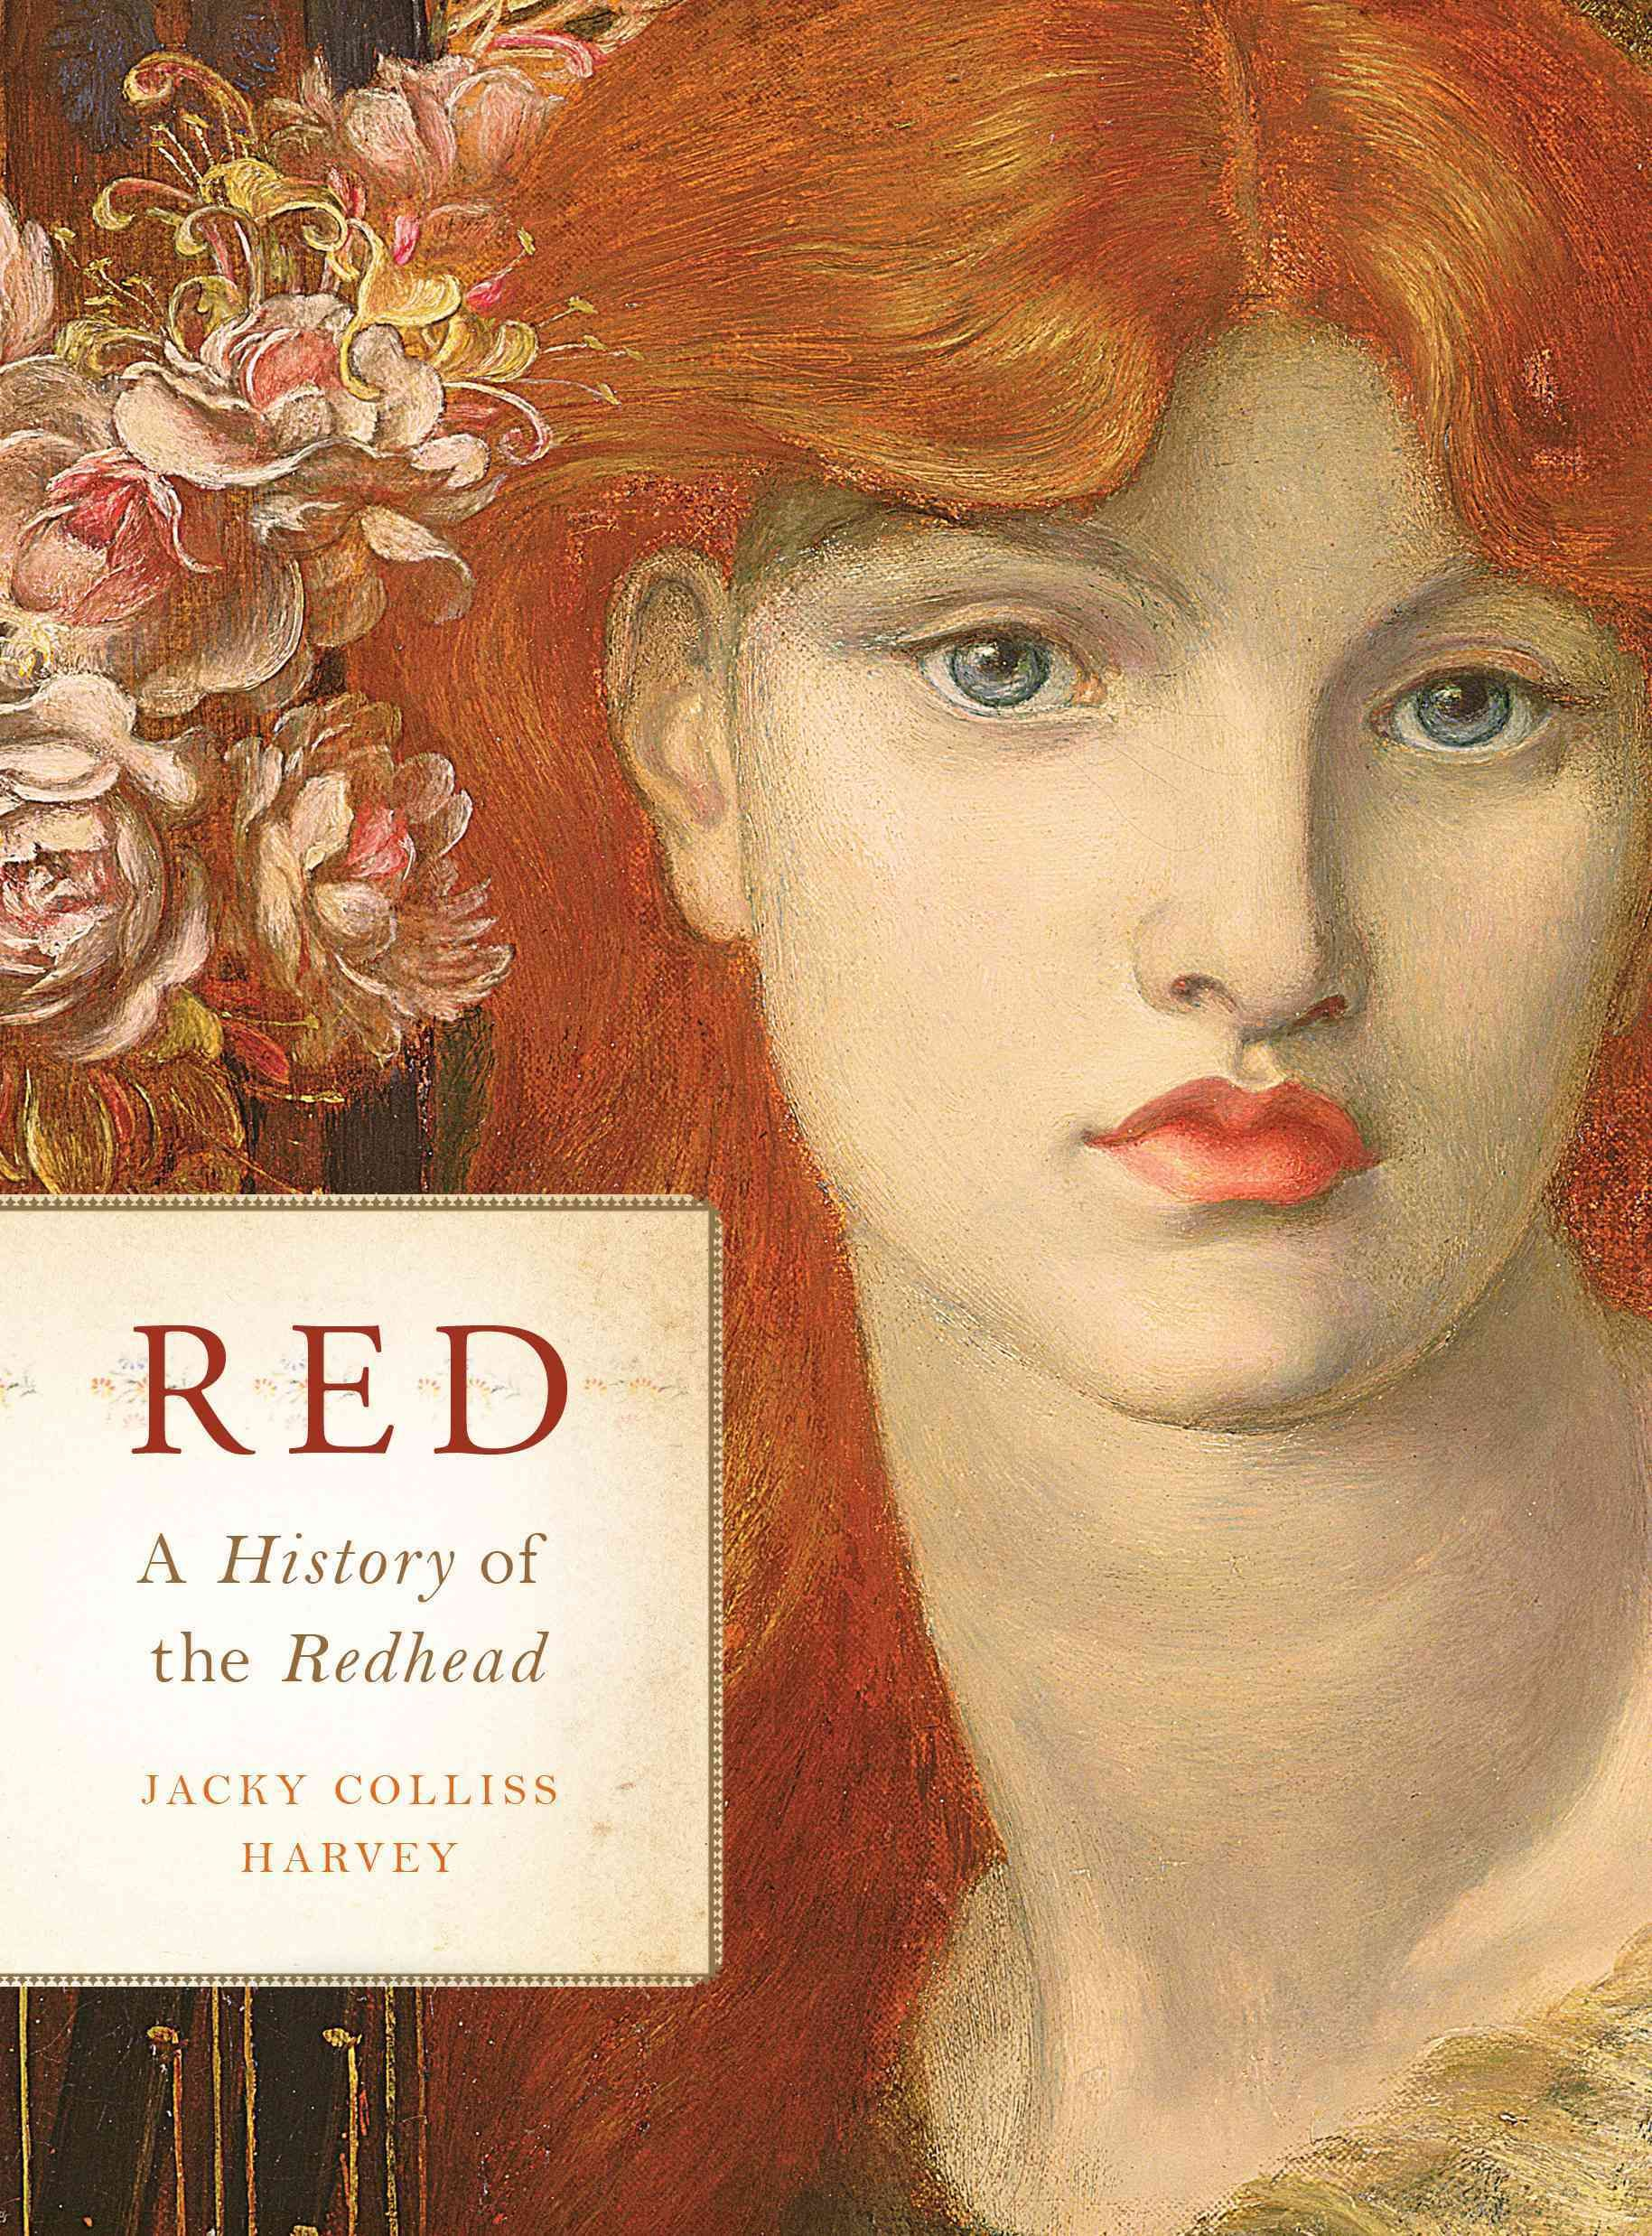 The Brilliantly Told Captivating History Of Red Hair Throughout The Ages And Across Multiple Disciplines Including Science Redhead Day Redhead Facts Redhead